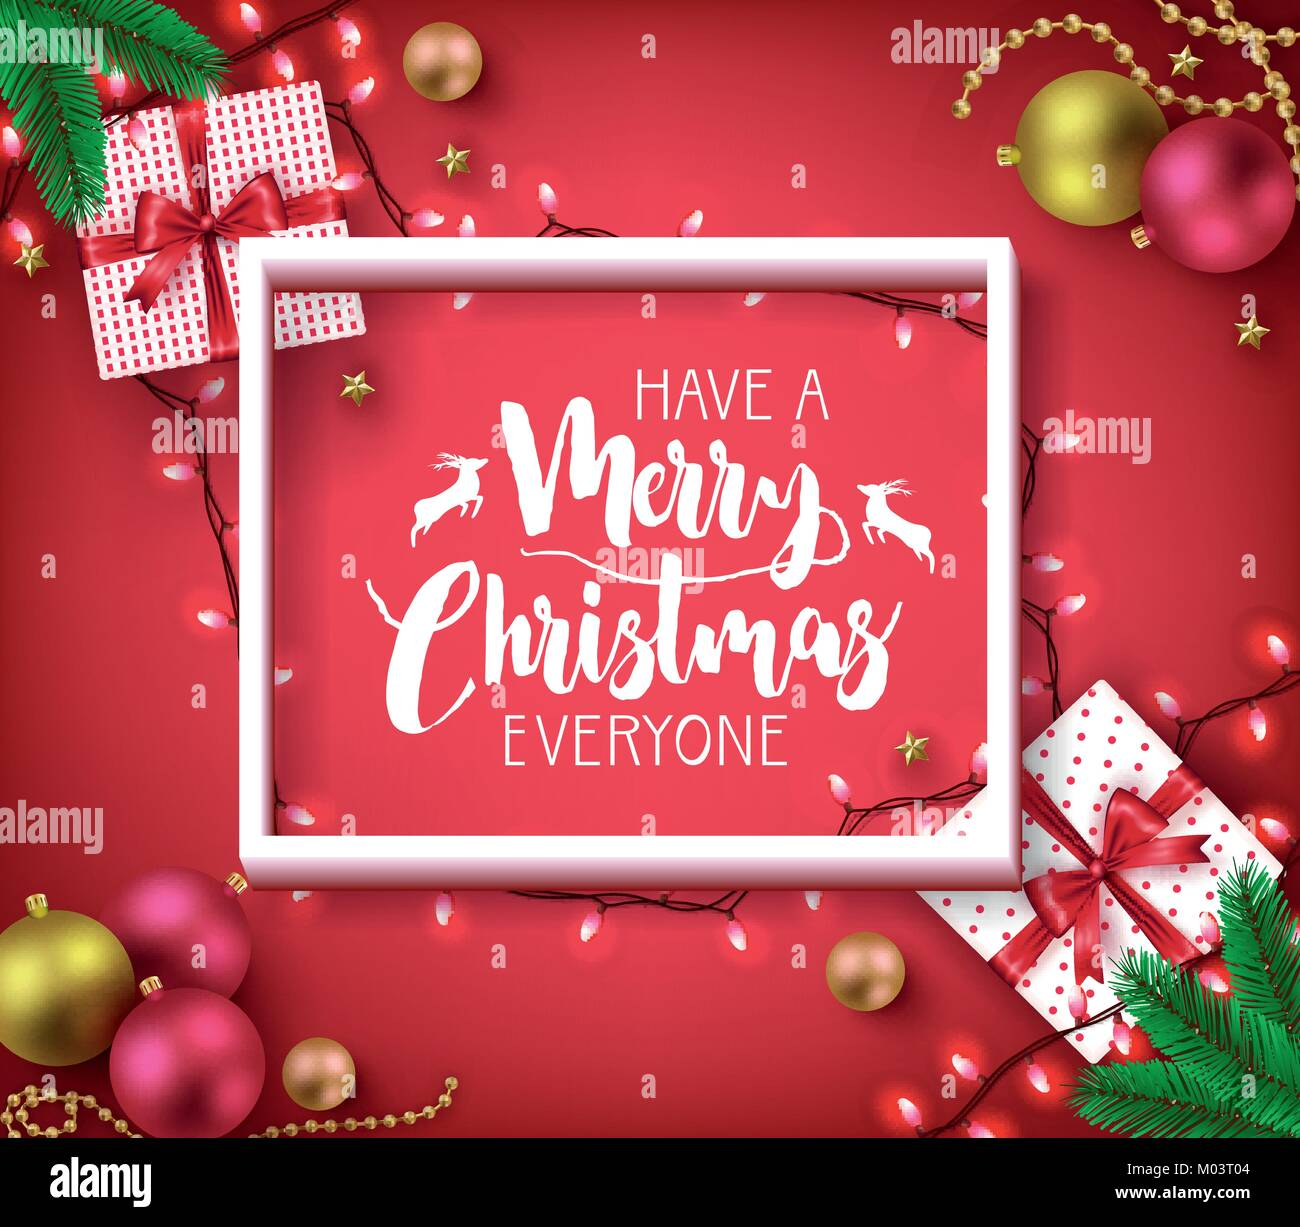 Merry Christmas Everyone >> Have A Merry Christmas Everyone Greeting Typography Poster Inside Of